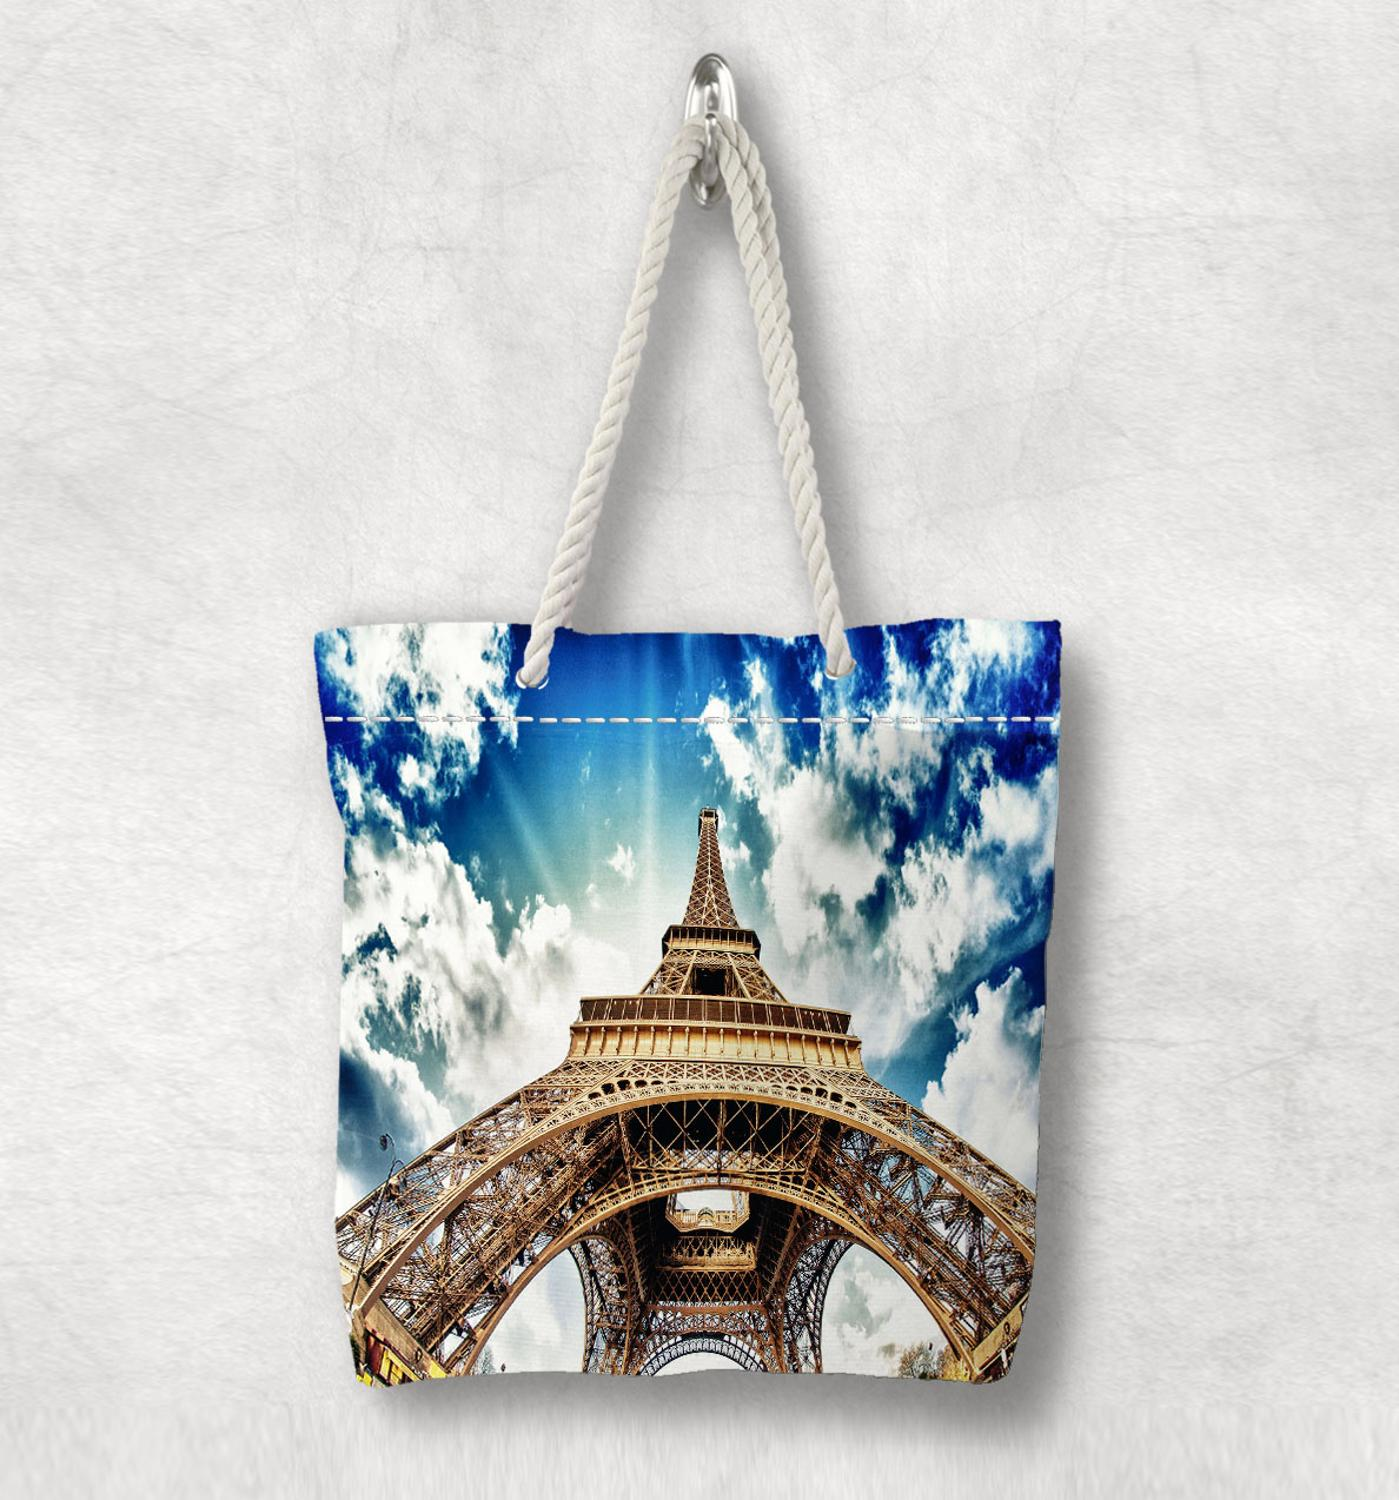 Else Blue Sky White Clouds Paris Eiffel Tower Fashion White Rope Handle Canvas Bag Cotton Canvas Zippered Tote Bag Shoulder Bag